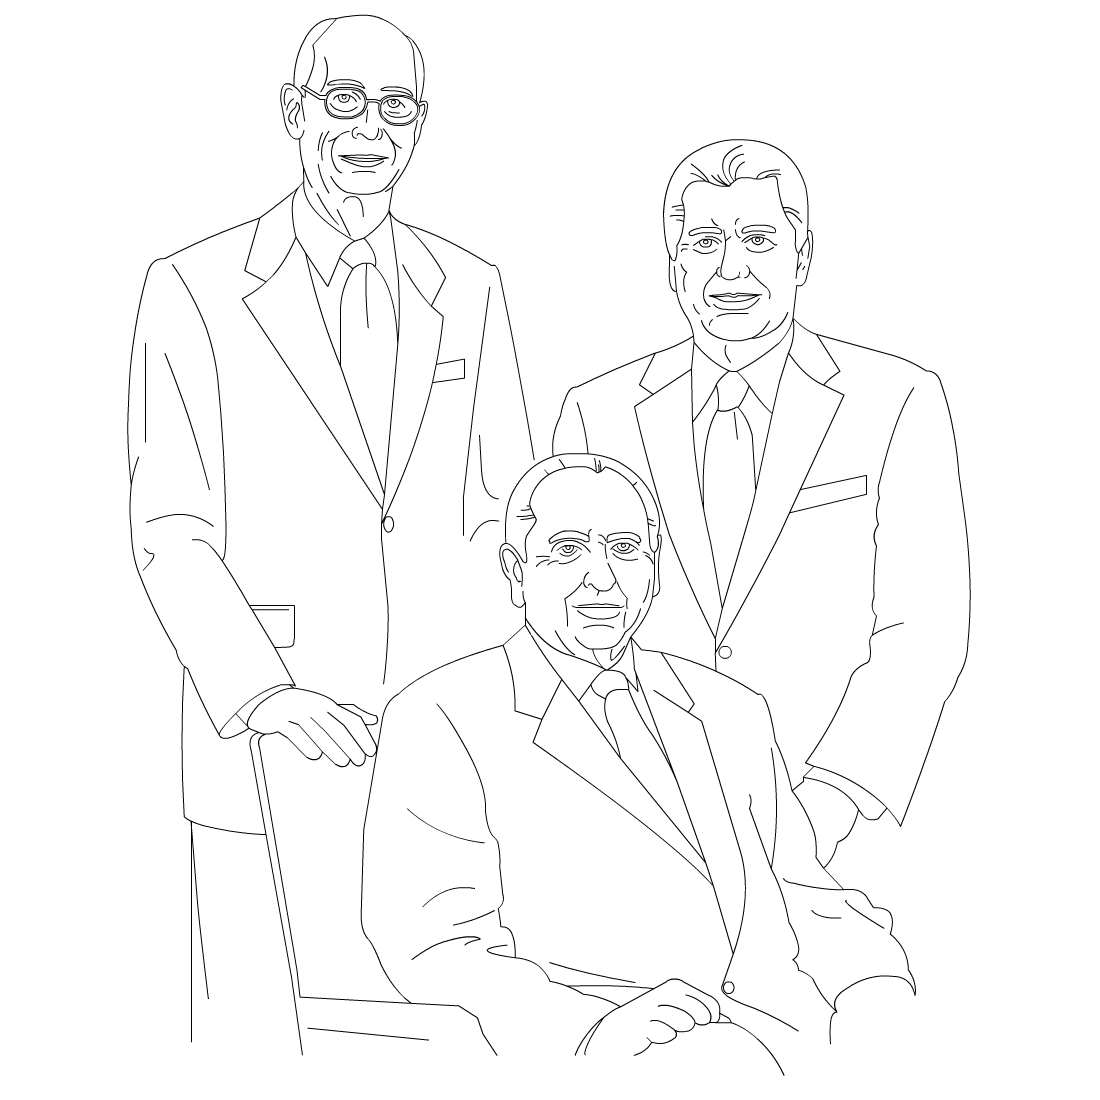 Free Lds Clipart To Color For Primary Children First Presidency